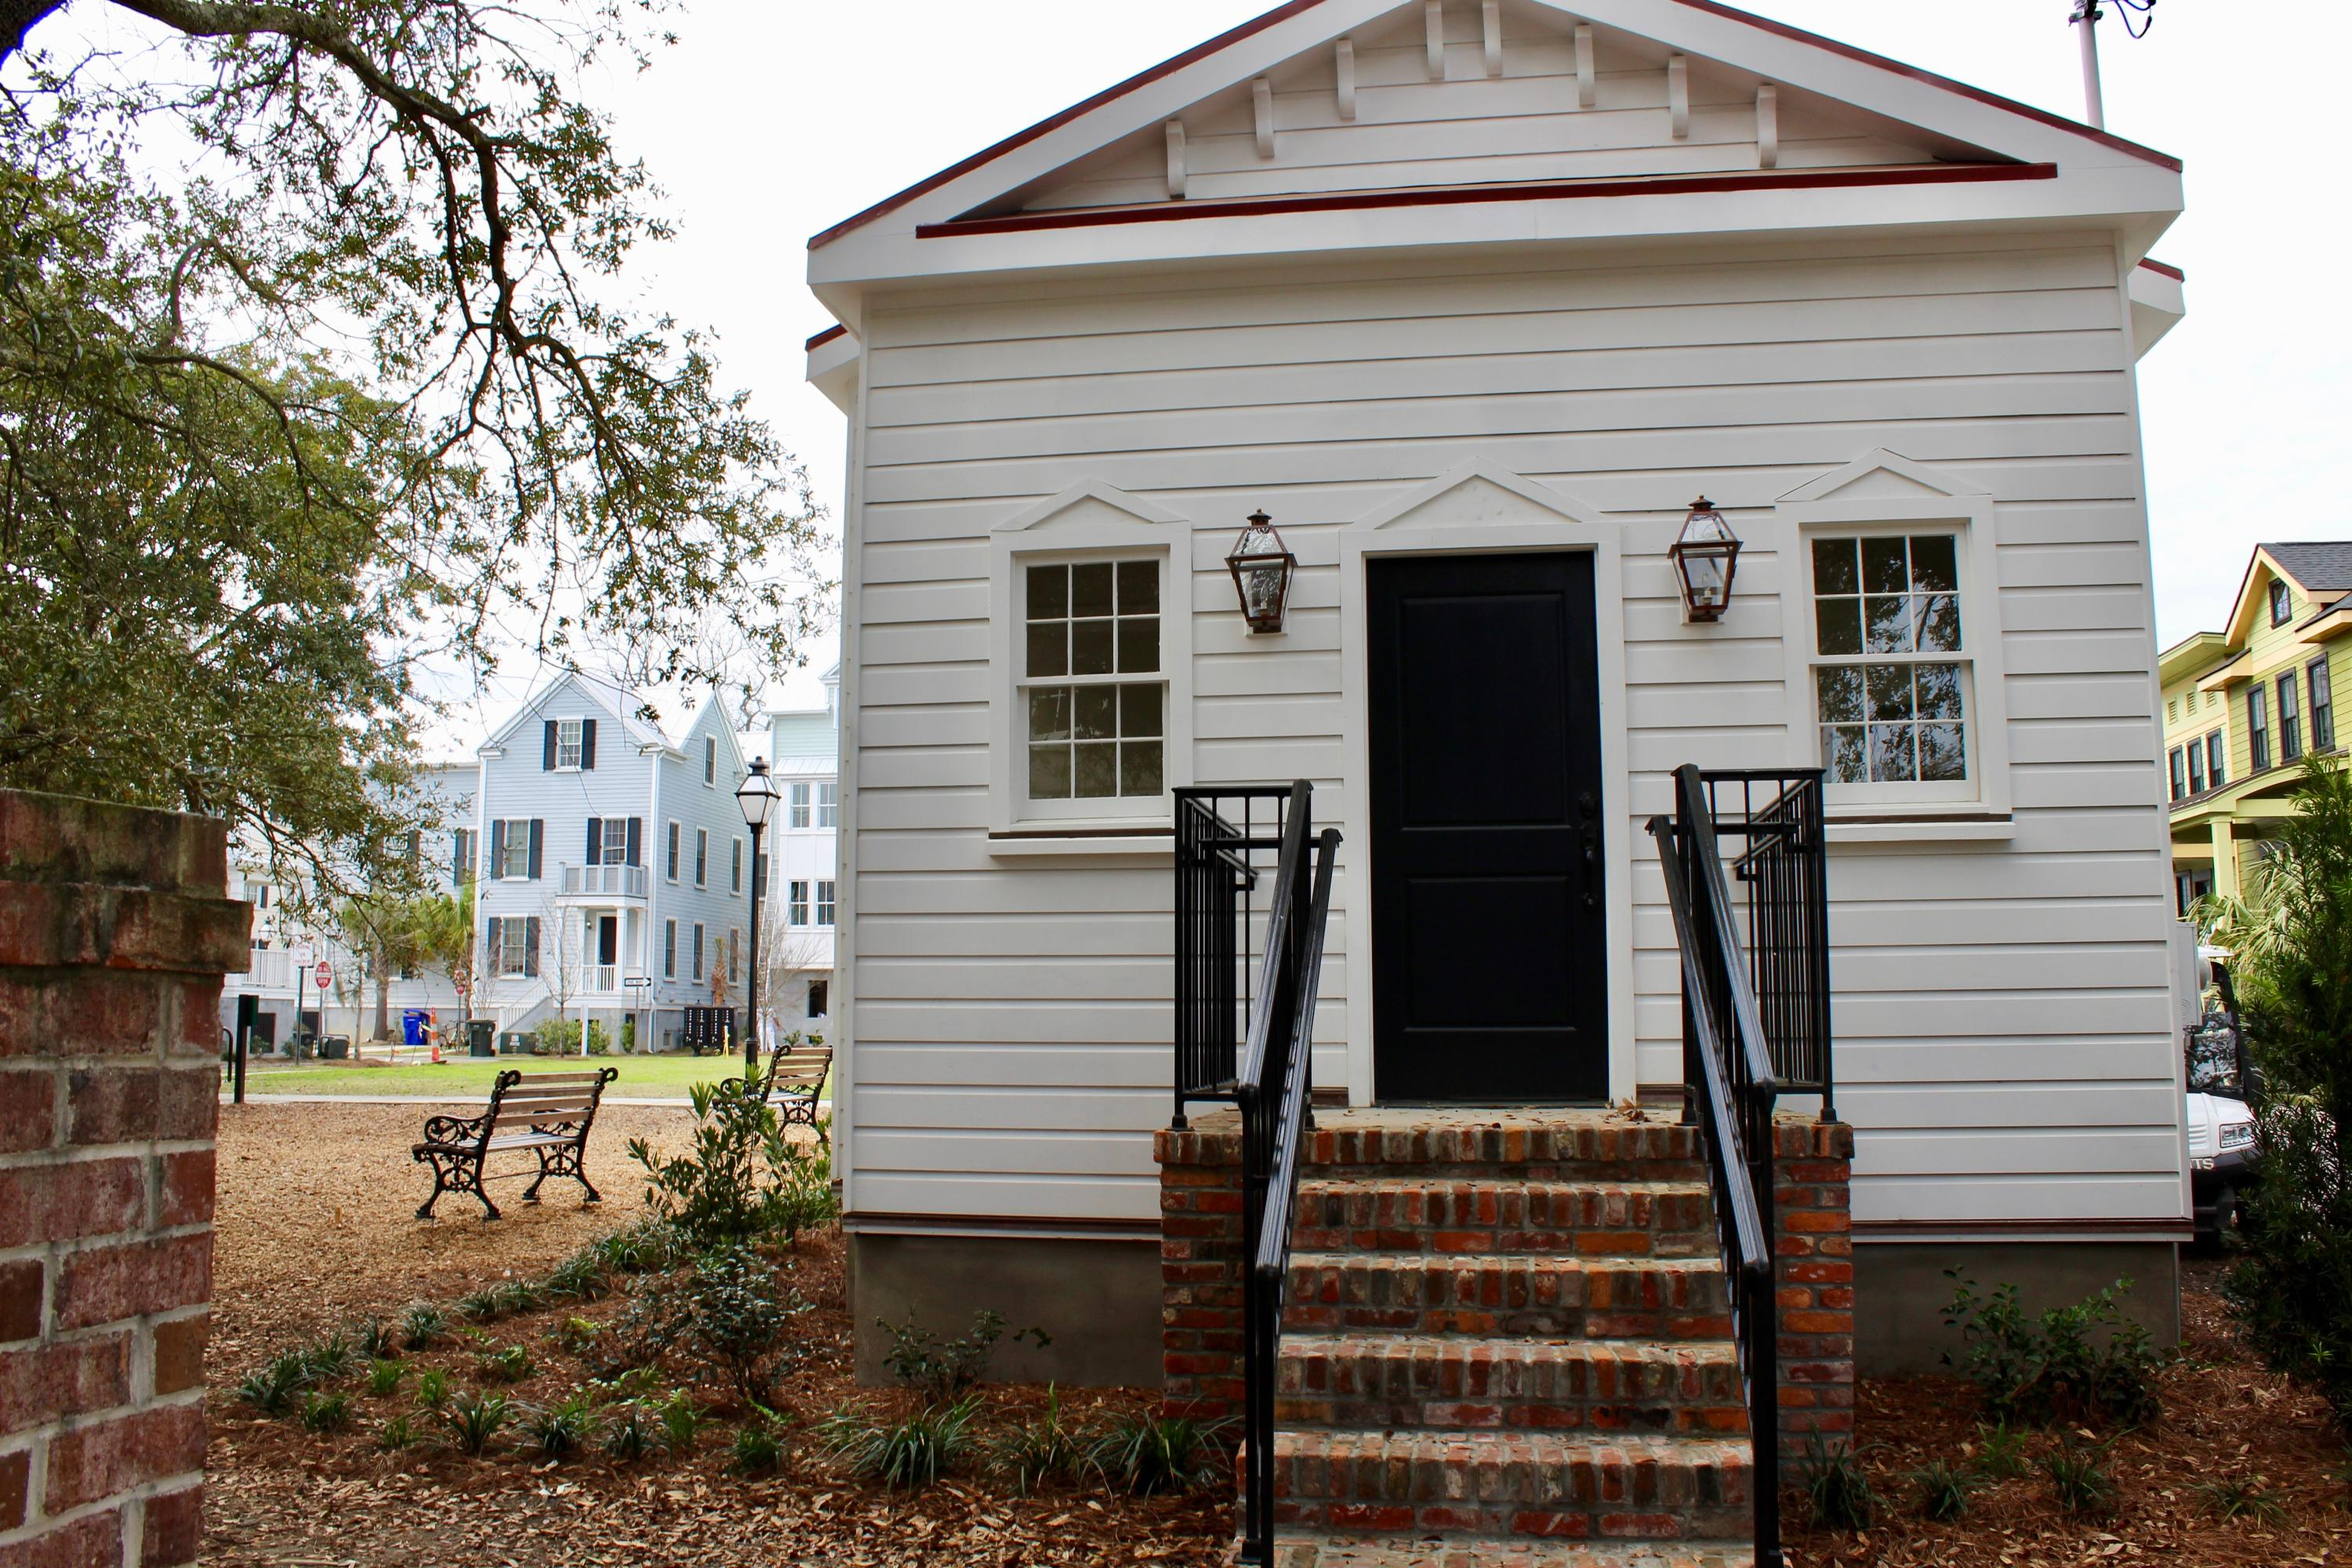 Morris Square Homes For Sale - 34 Dereef, Charleston, SC - 6